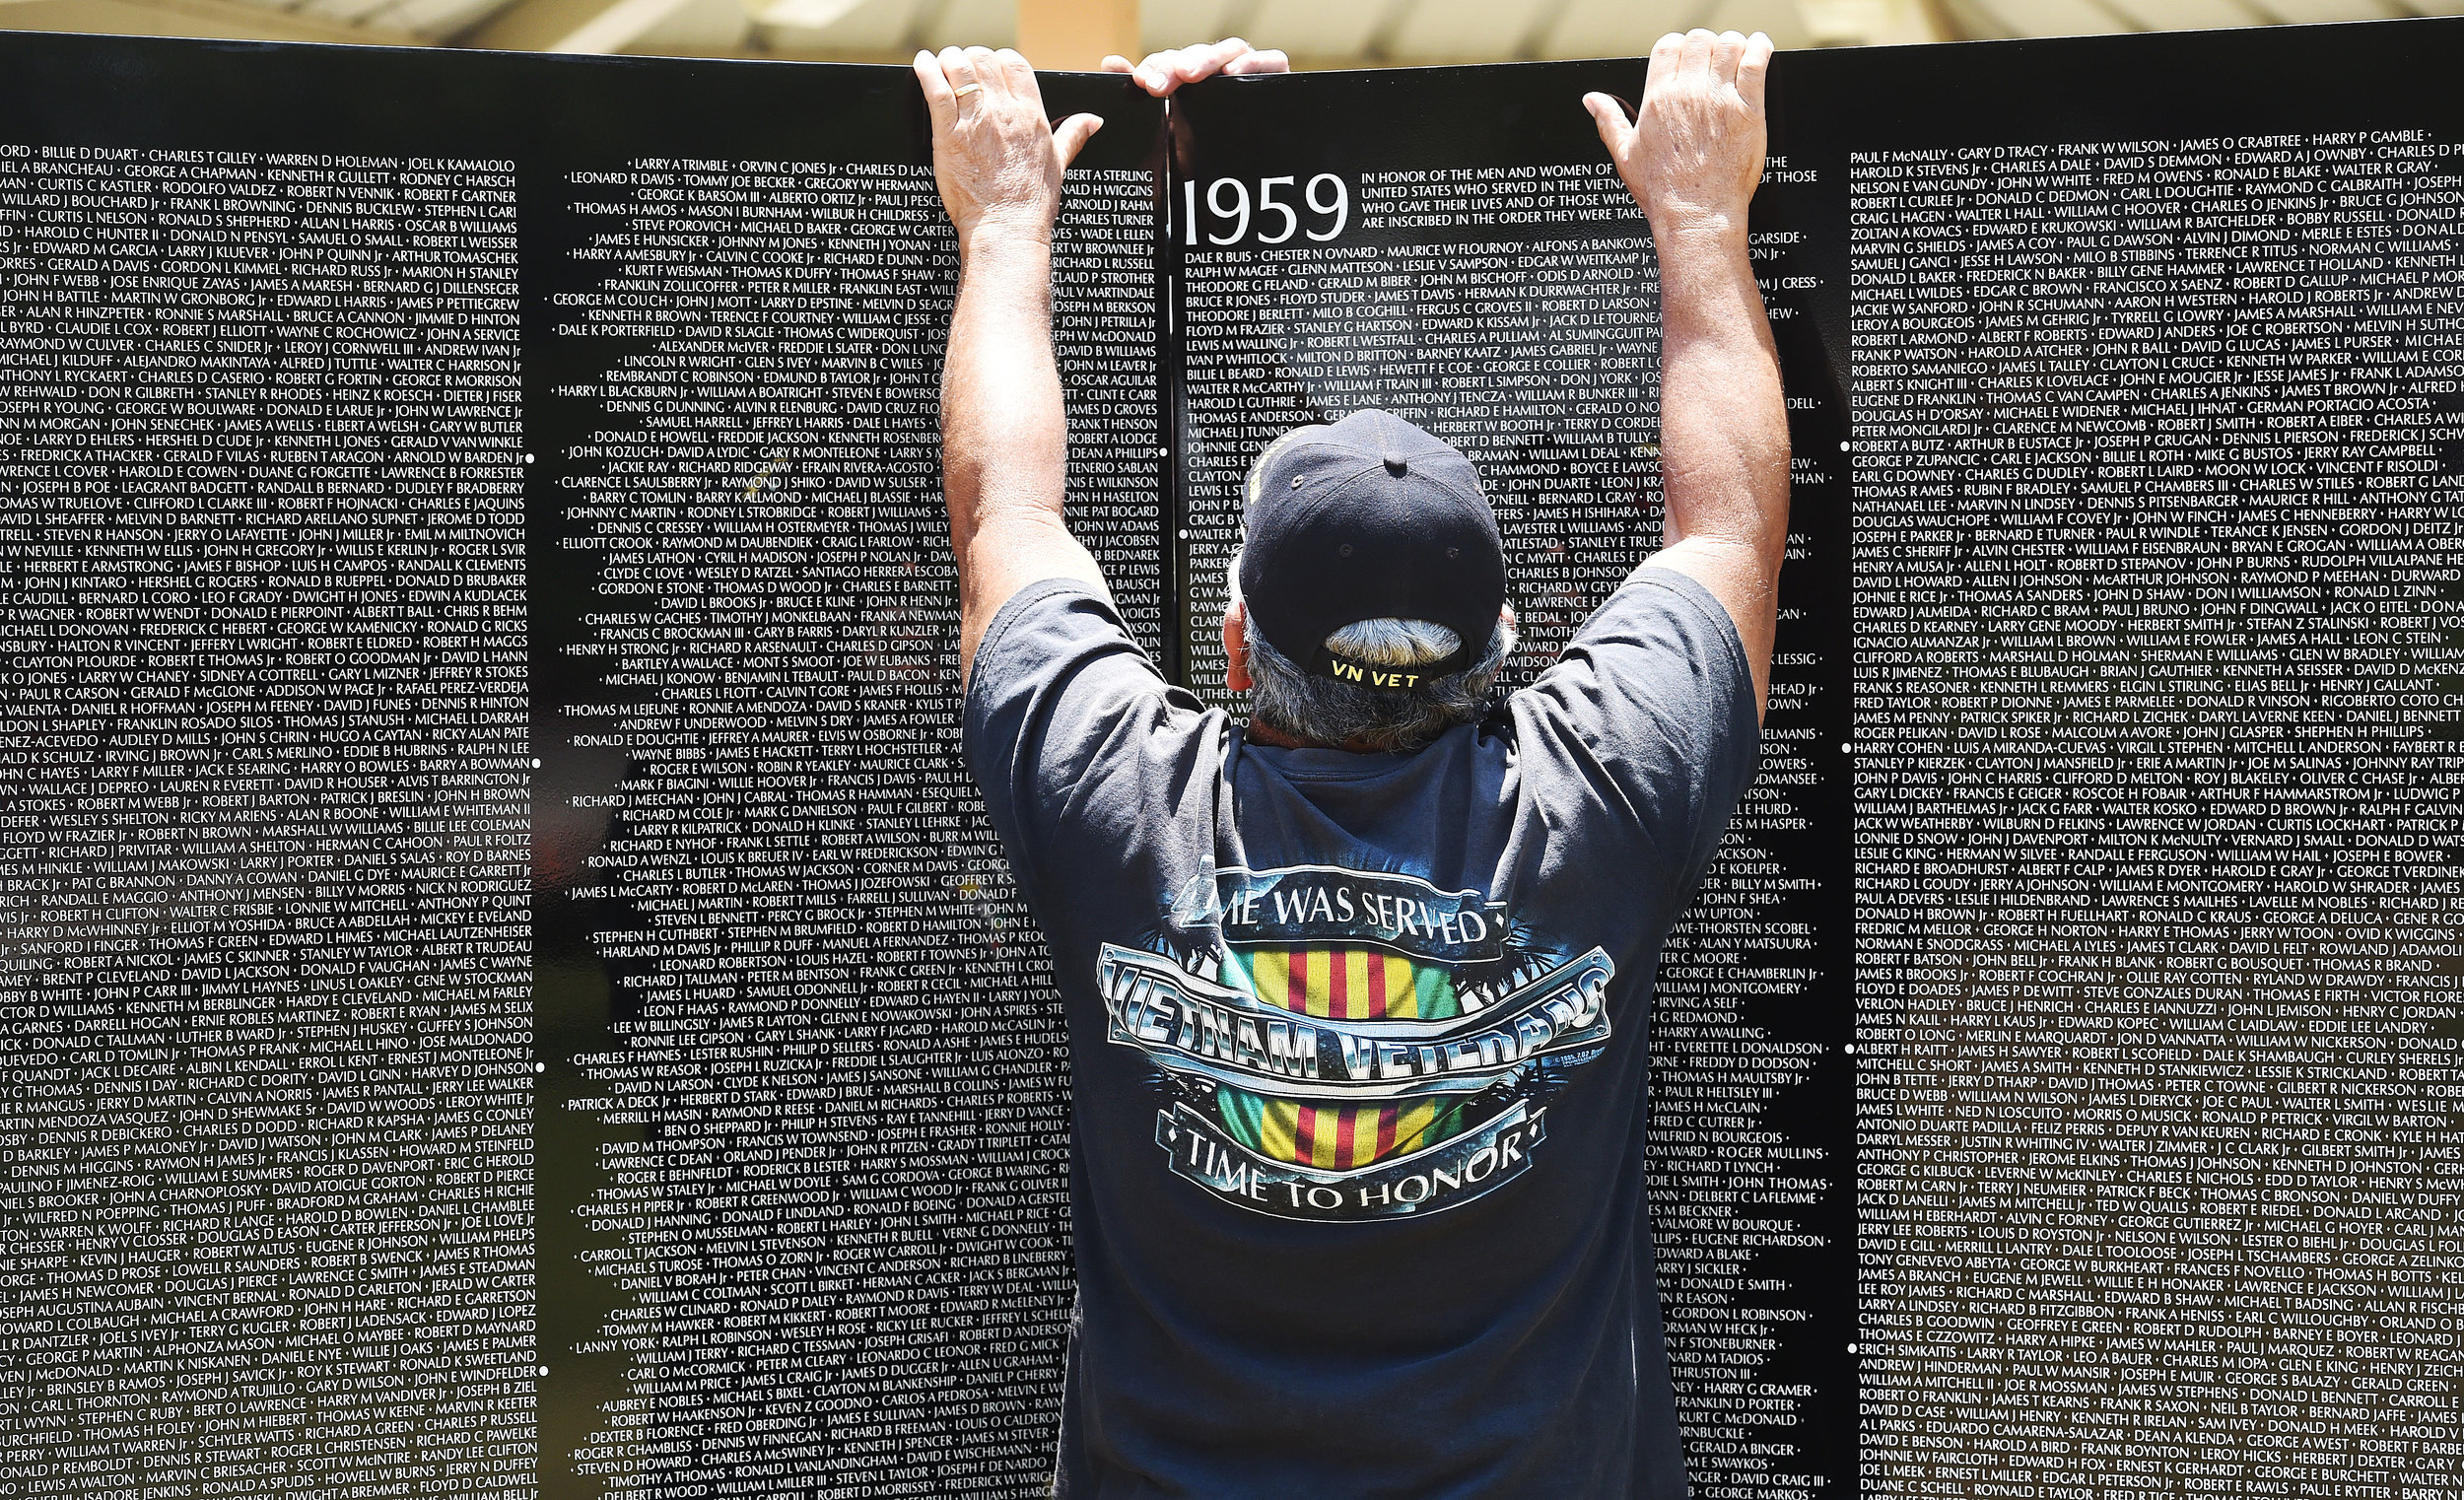 Vietnam Marine veteran Ruben Luis, 69 from San Bernardino, helps install the first two panels of the Vietnam Moving Wall Thursday at Ayala Park in Bloomington. Volunteers, many being Vietnam veterans, helped construct the Vietnam Moving Wall in Ayala Park in Bloomington Thursday June 7, 2018. The wall, containing 58,318 names, with 132 being from San Bernardino County, will be on display 24-hours a day beginning Friday and lasting through Monday.